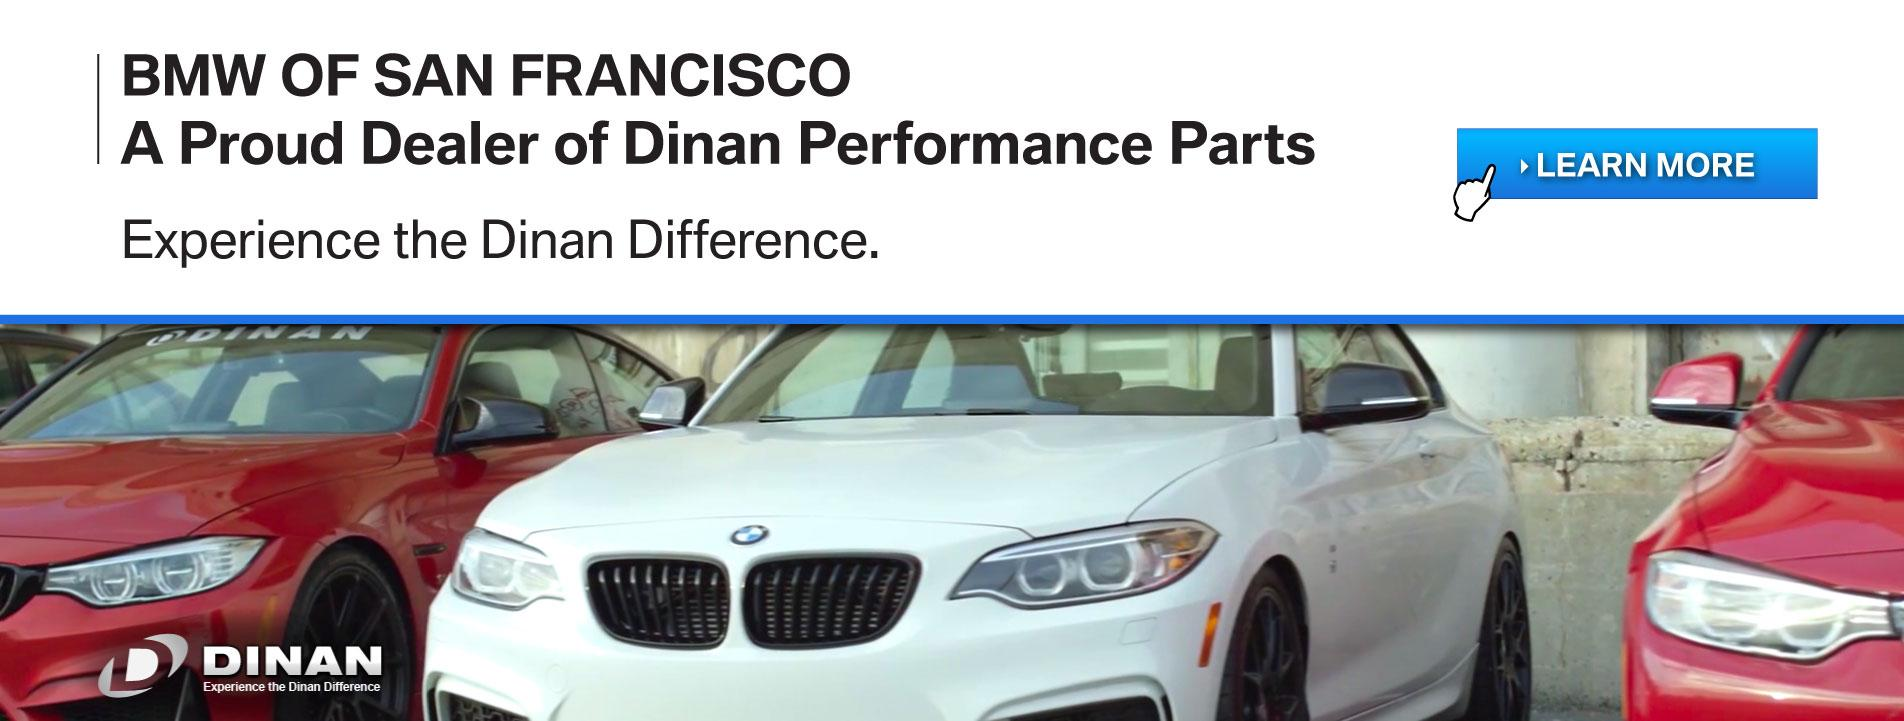 Experience the Dinan Difference